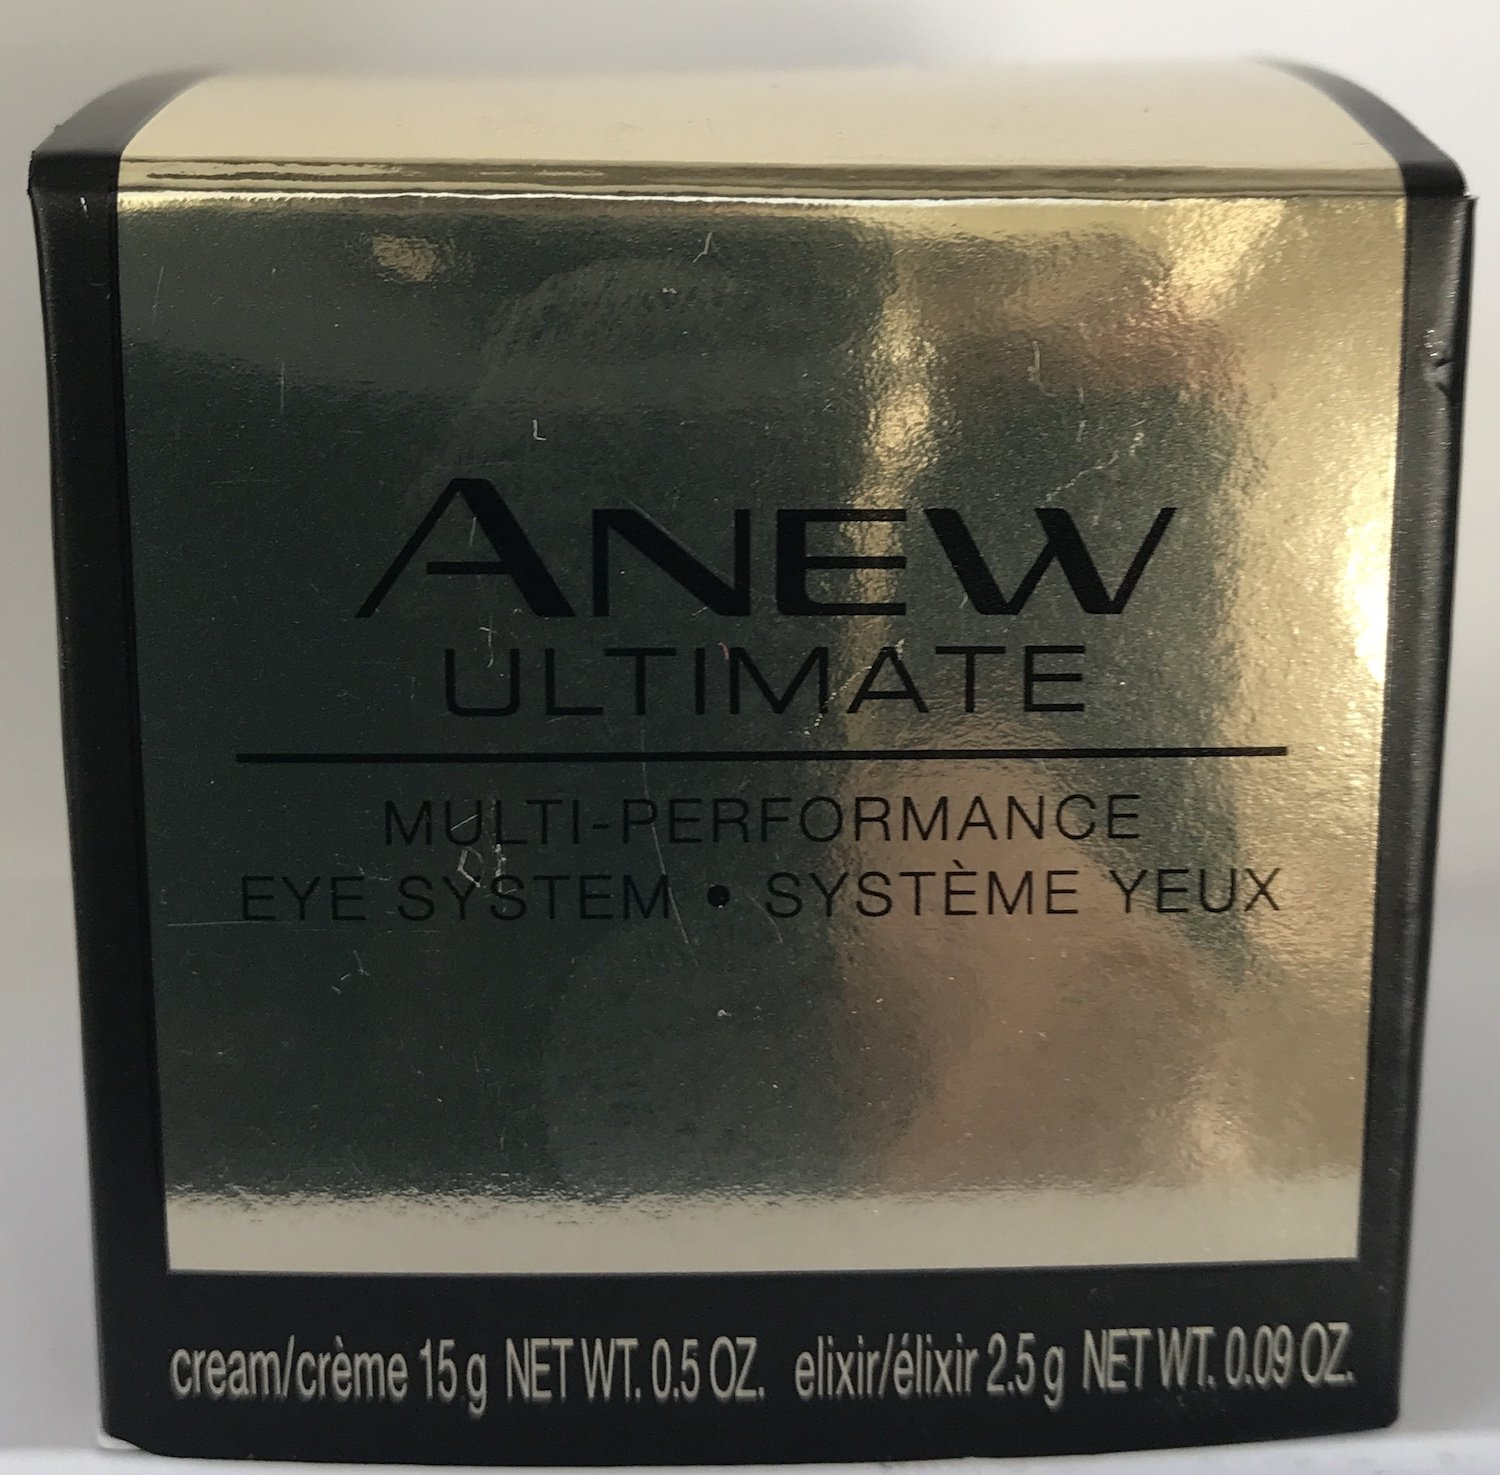 Anew Ultimate Multi-Performance Eye System by AVON/ANEW (Image #1)